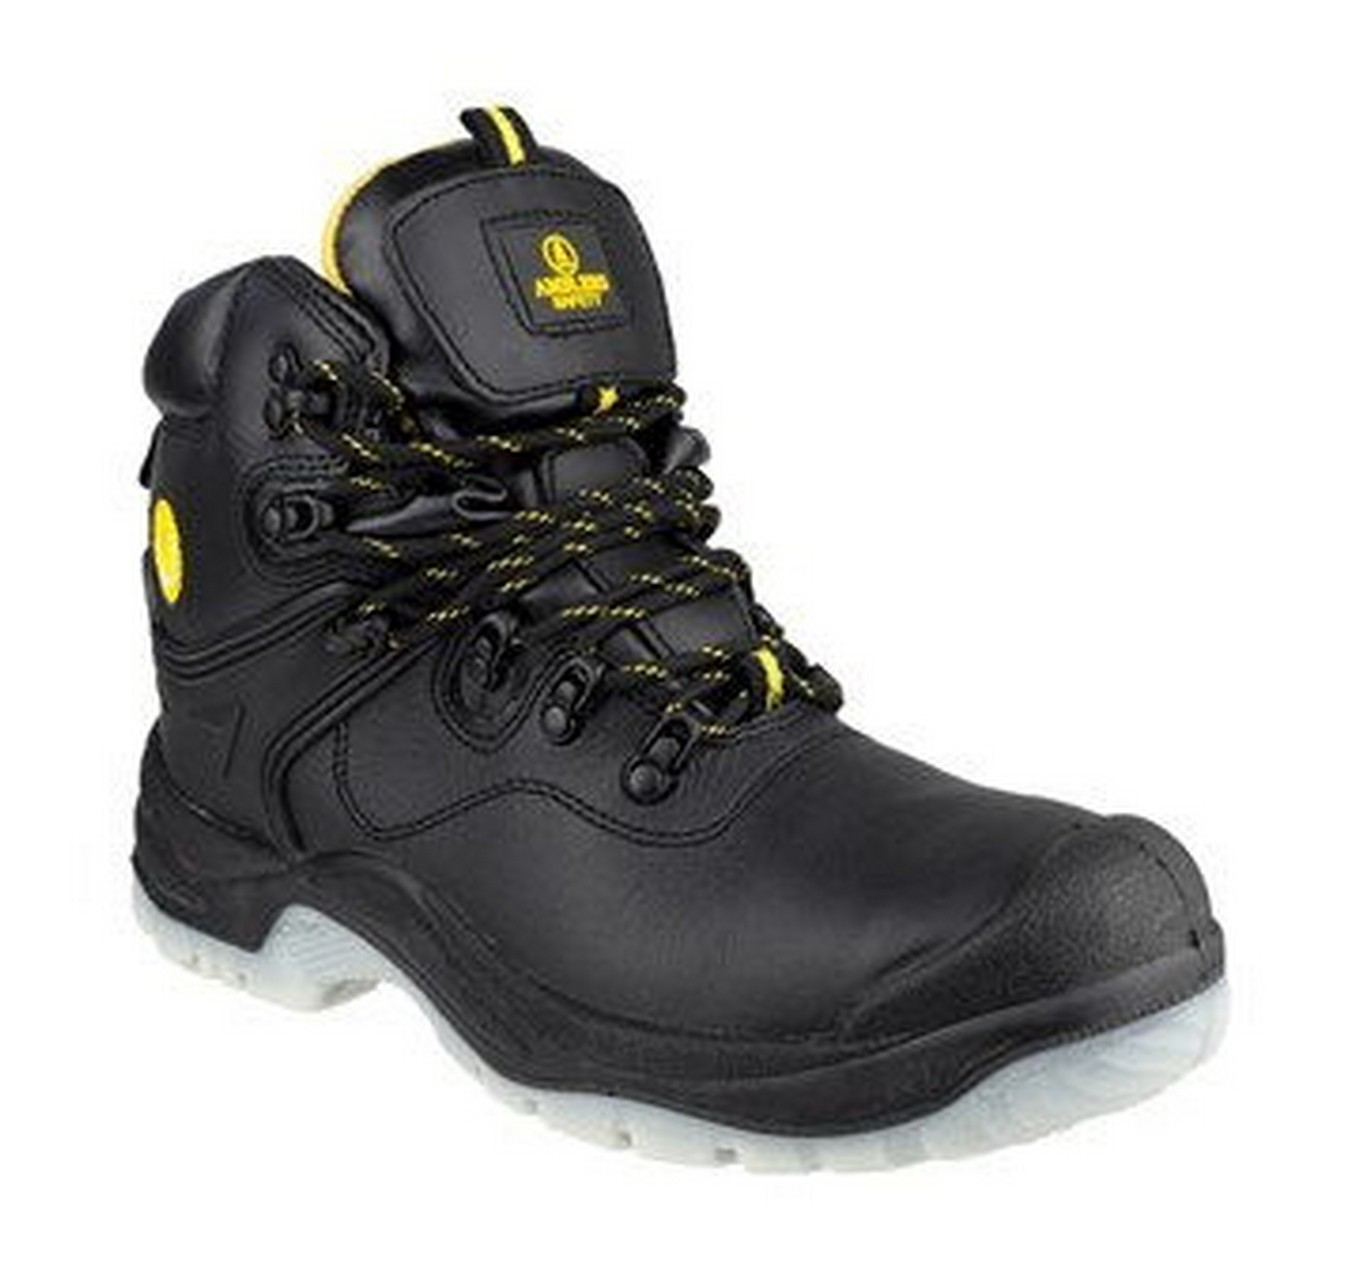 Safety Boot Amblers Fs198 7